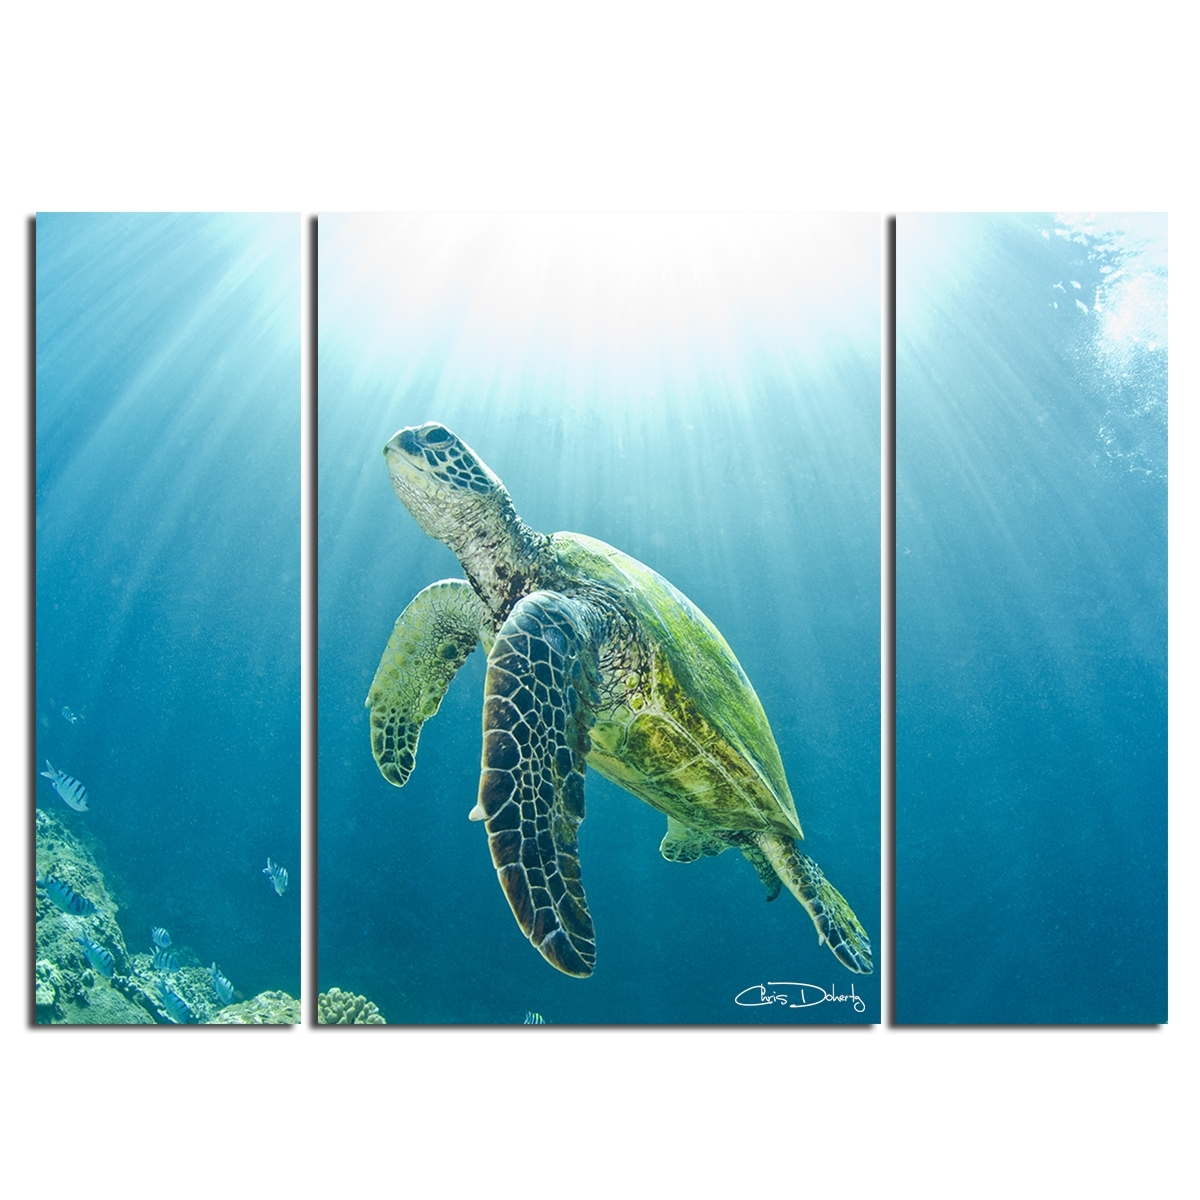 Christopher Doherty 'sea Turtle' Canvas Wall Art (3 Piece) | Ebay For Most Popular Sea Turtle Canvas Wall Art (View 7 of 20)